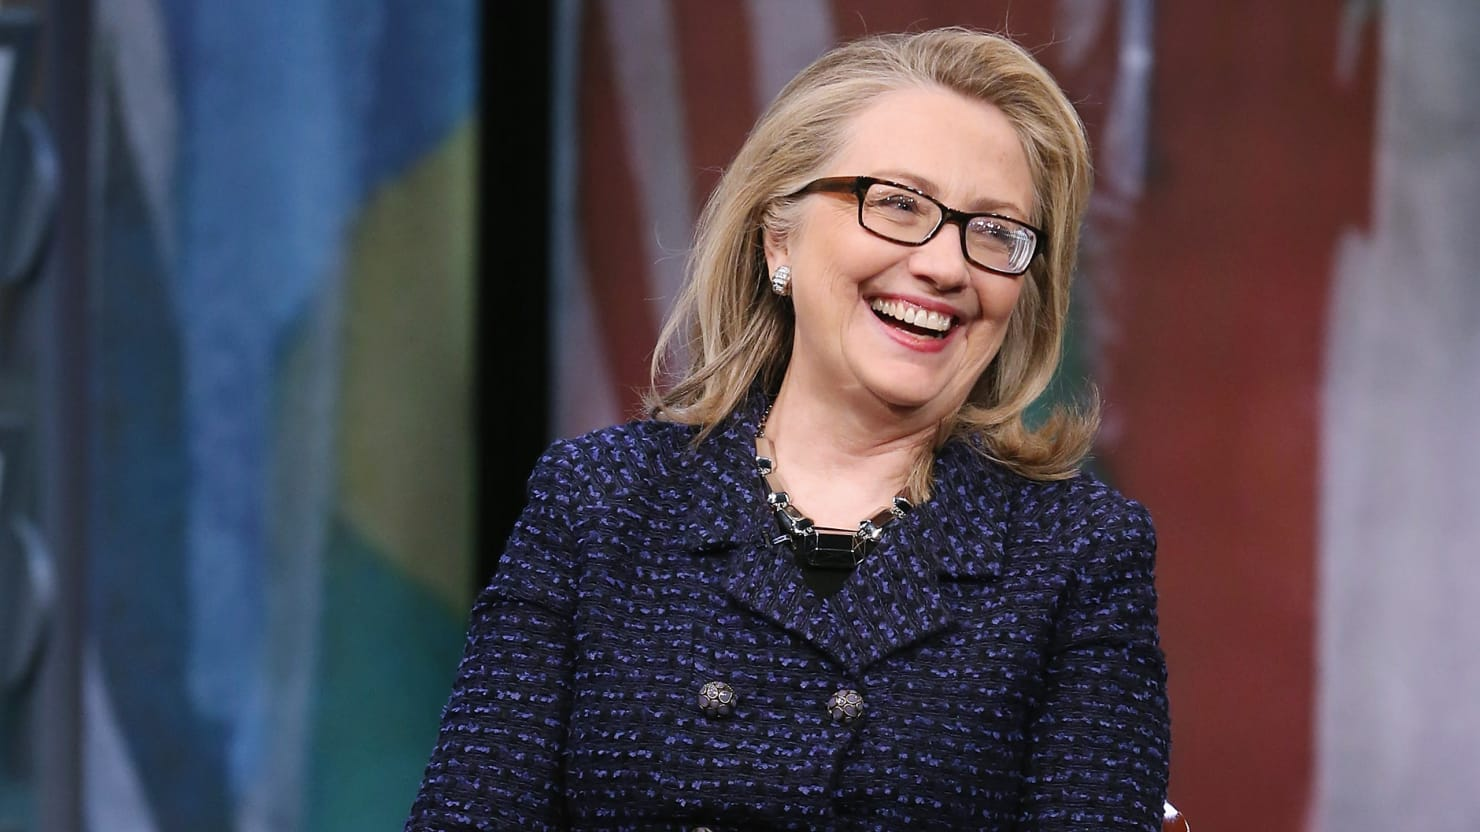 Plouffe: Hillary Clinton 'Probably the Strongest Candidate' for 2016